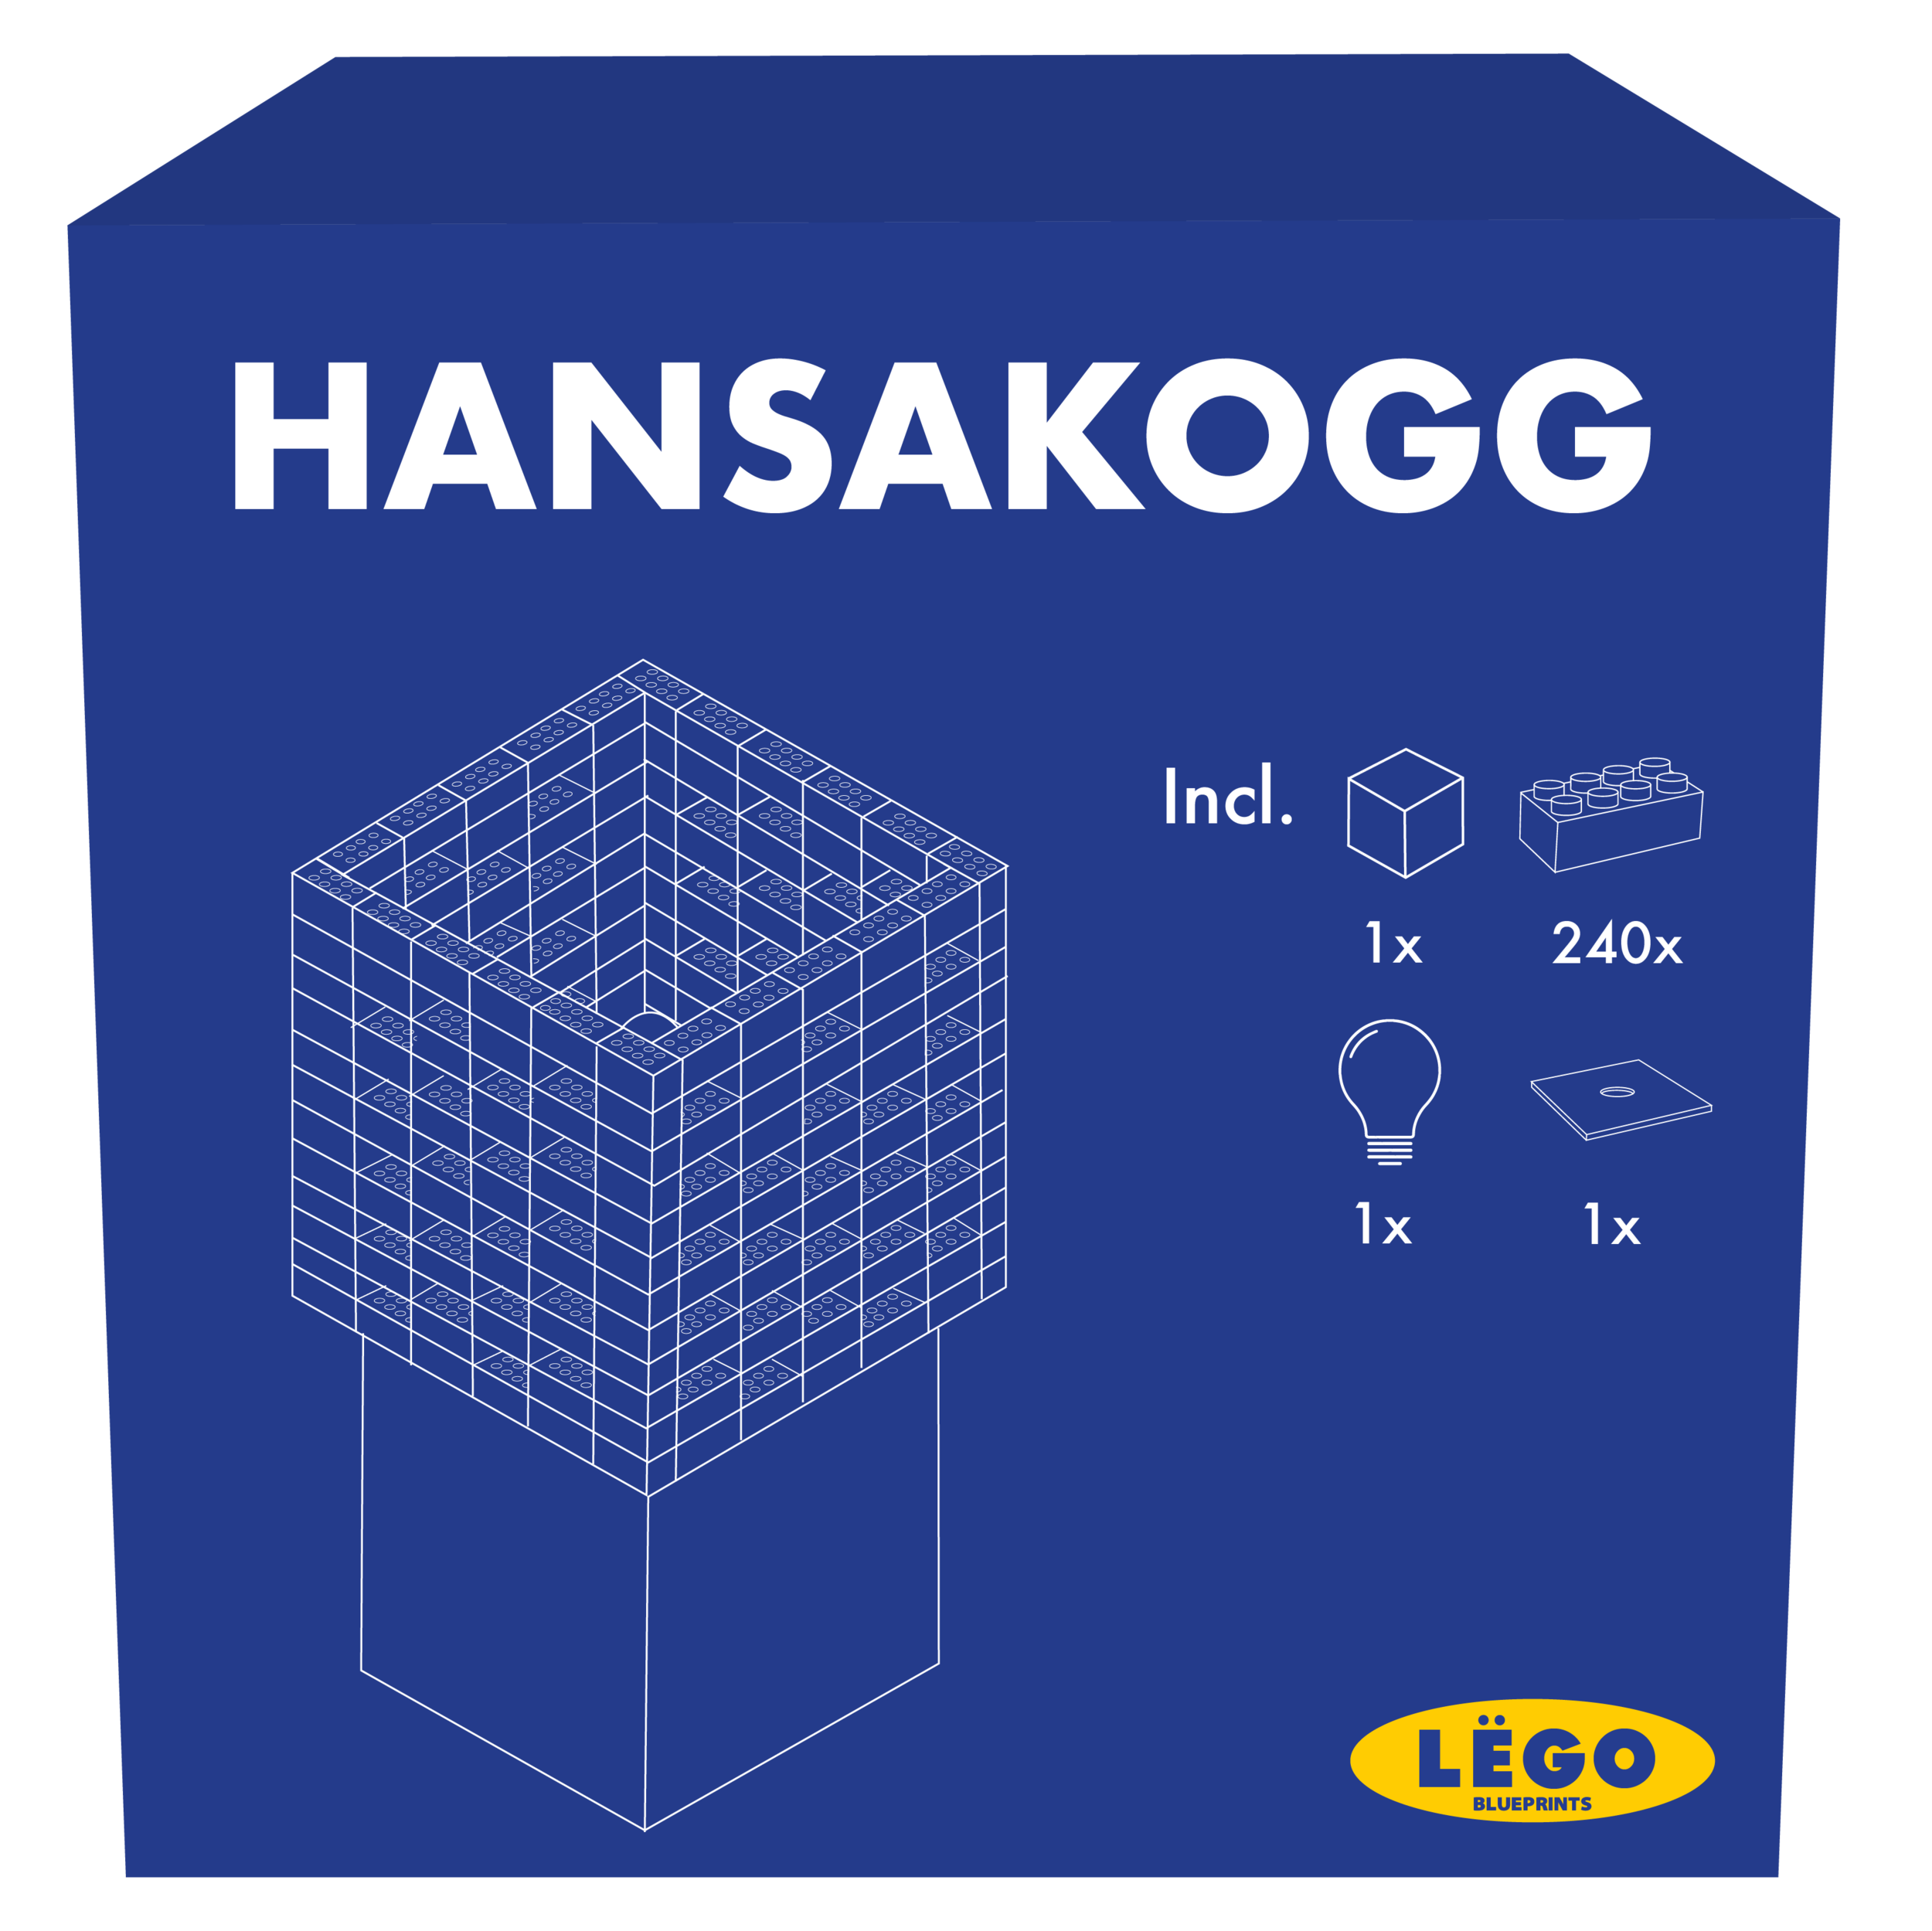 lego blueprint instructions and boxes-03.png